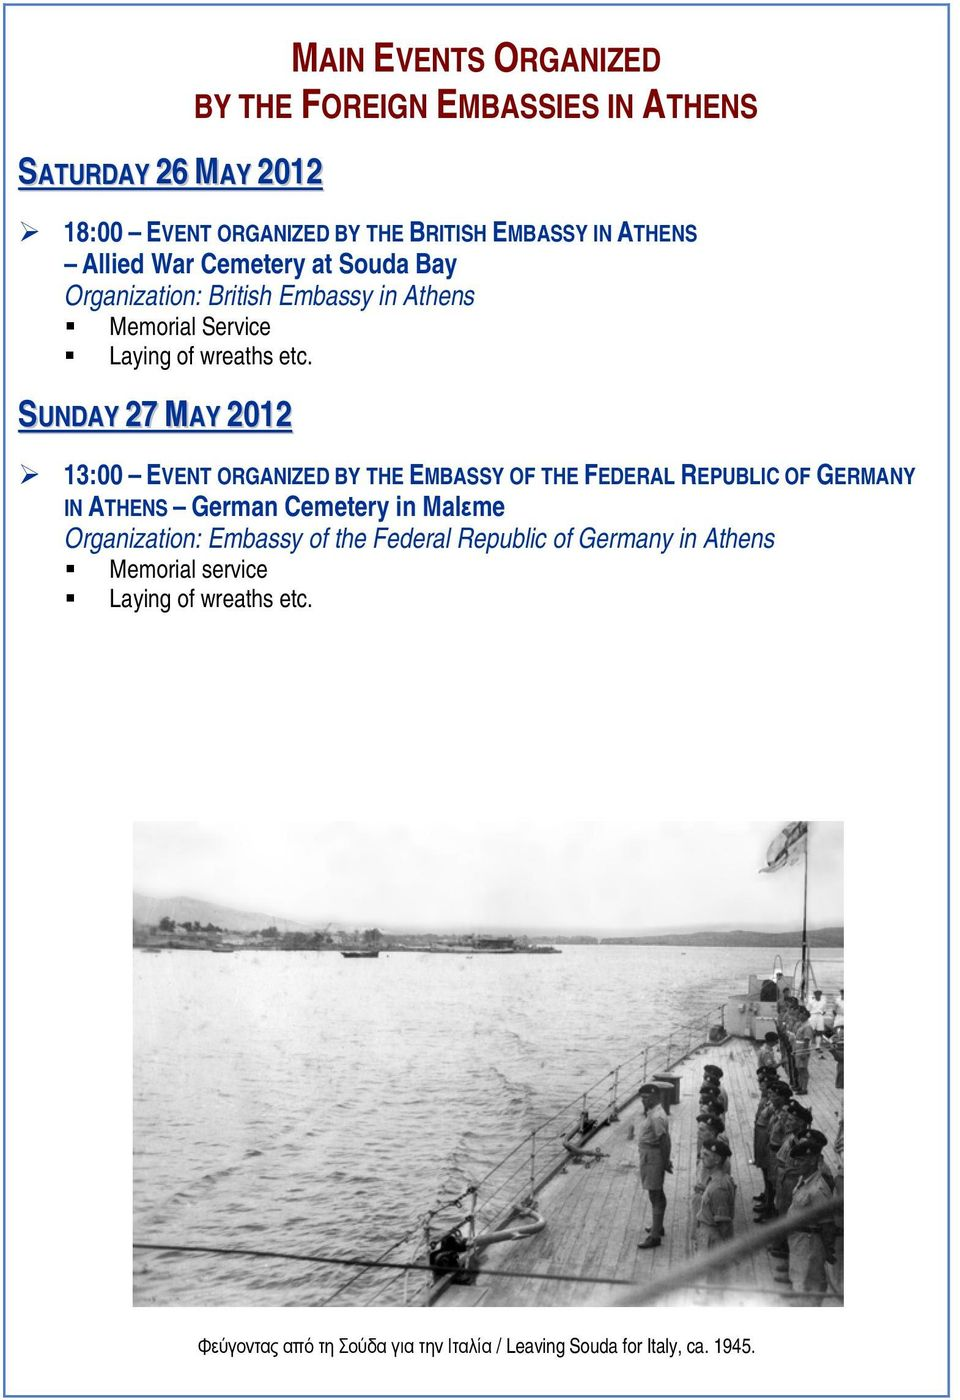 13:00 EVENT ORGANIZED BY THE EMBASSY OF THE FEDERAL REPUBLIC OF GERMANY IN ATHENS German Cemetery in Malεme Organization: